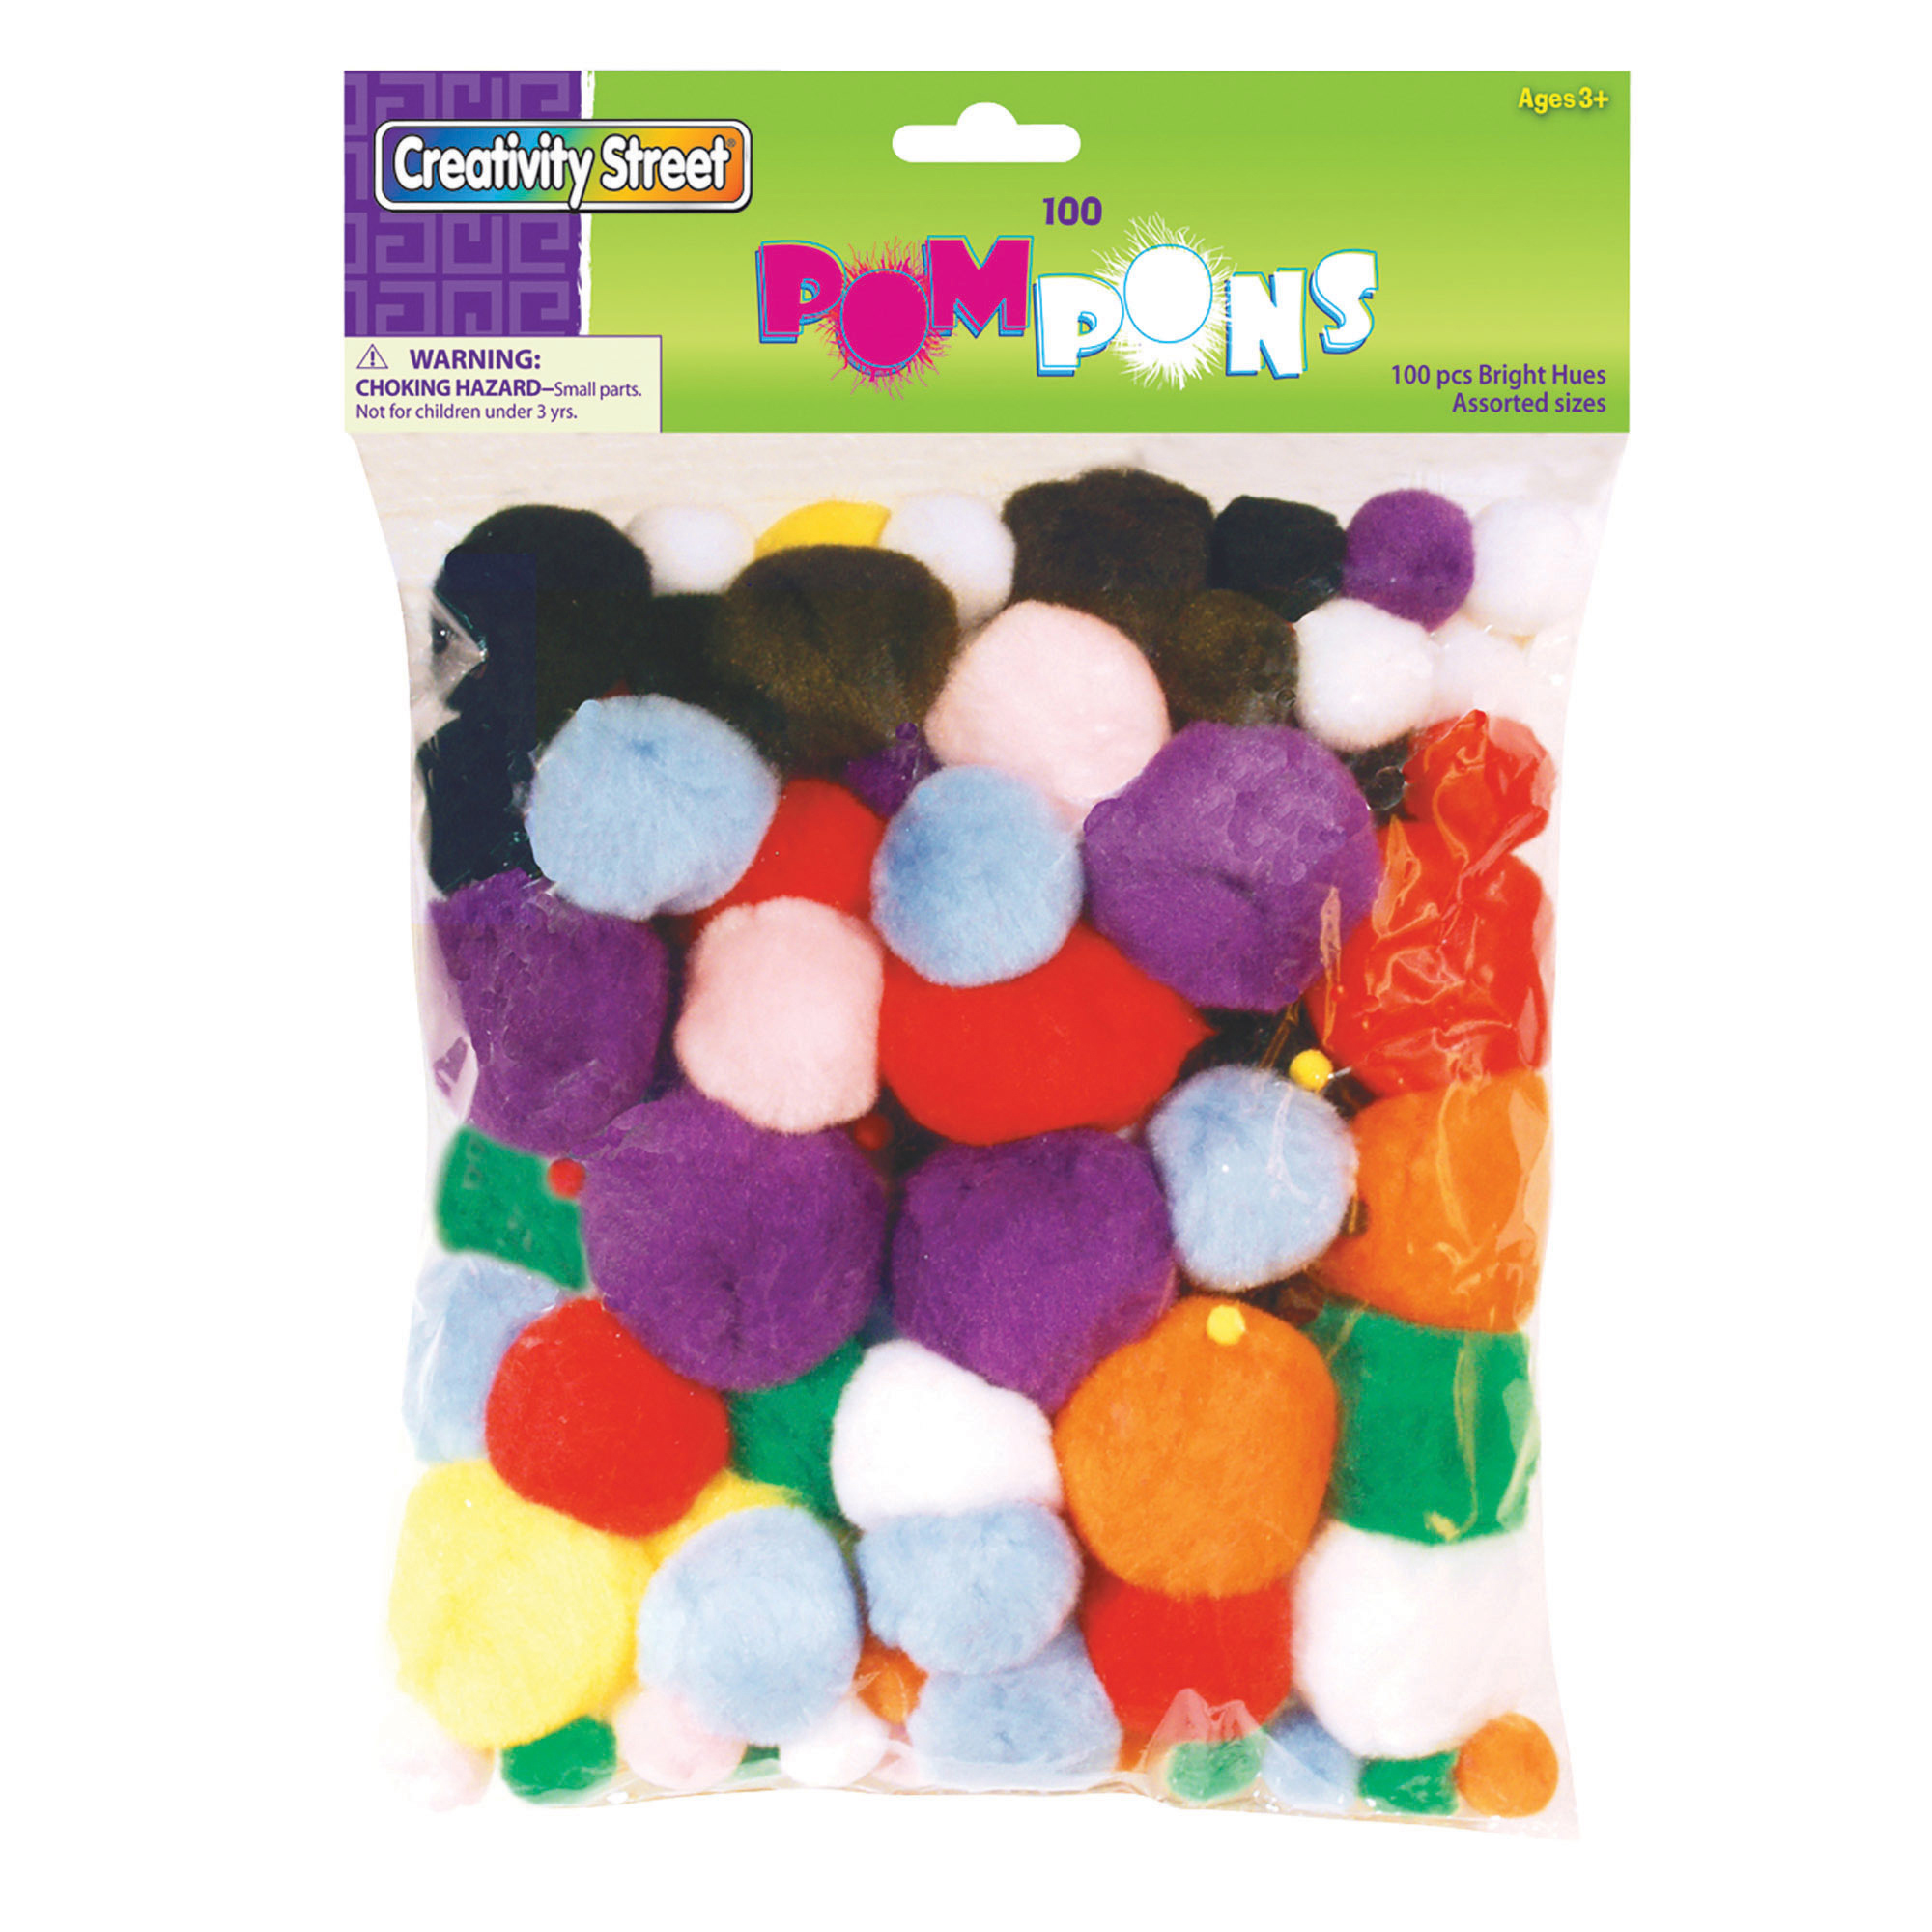 Creativity Street® Pom Pons, Bright Hues, Assorted Sizes - 100 per pack, 3 packs